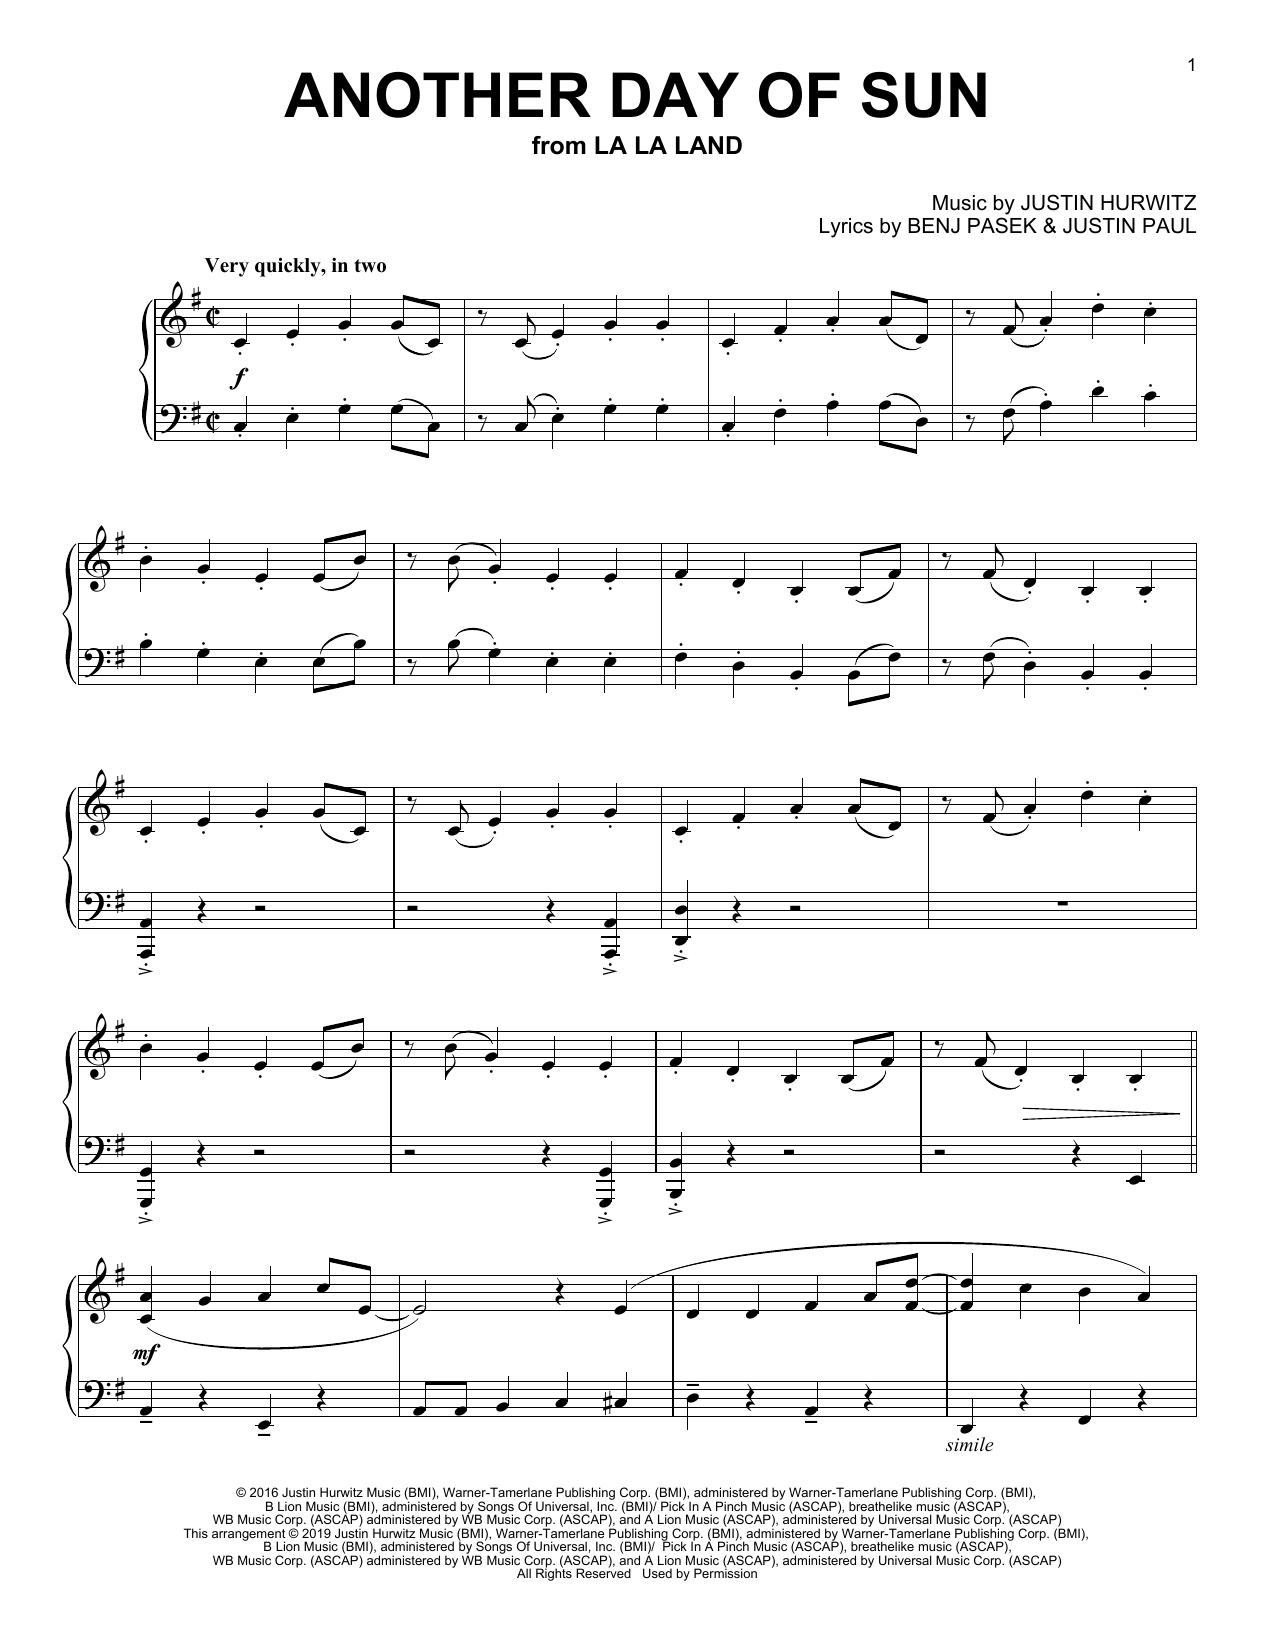 La La Land Cast Another Day Of Sun From La La Land Sheet Music Pdf Notes Chords Film Tv Score Piano Vocal Download Printable Sku 180357